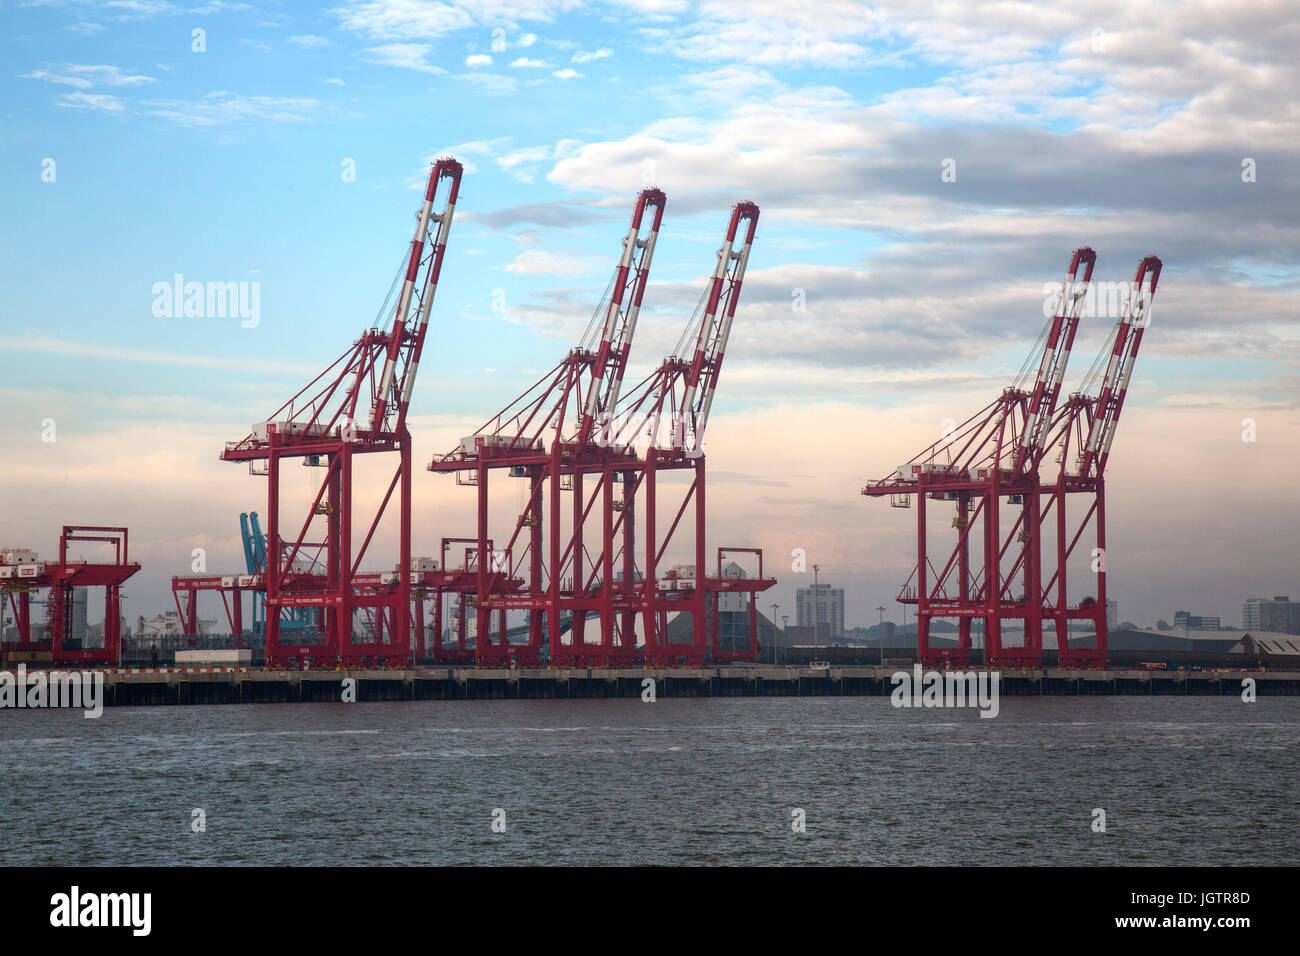 Large cranes at the mouth of The River Mersey, entering Liverpool in England. - Stock Image